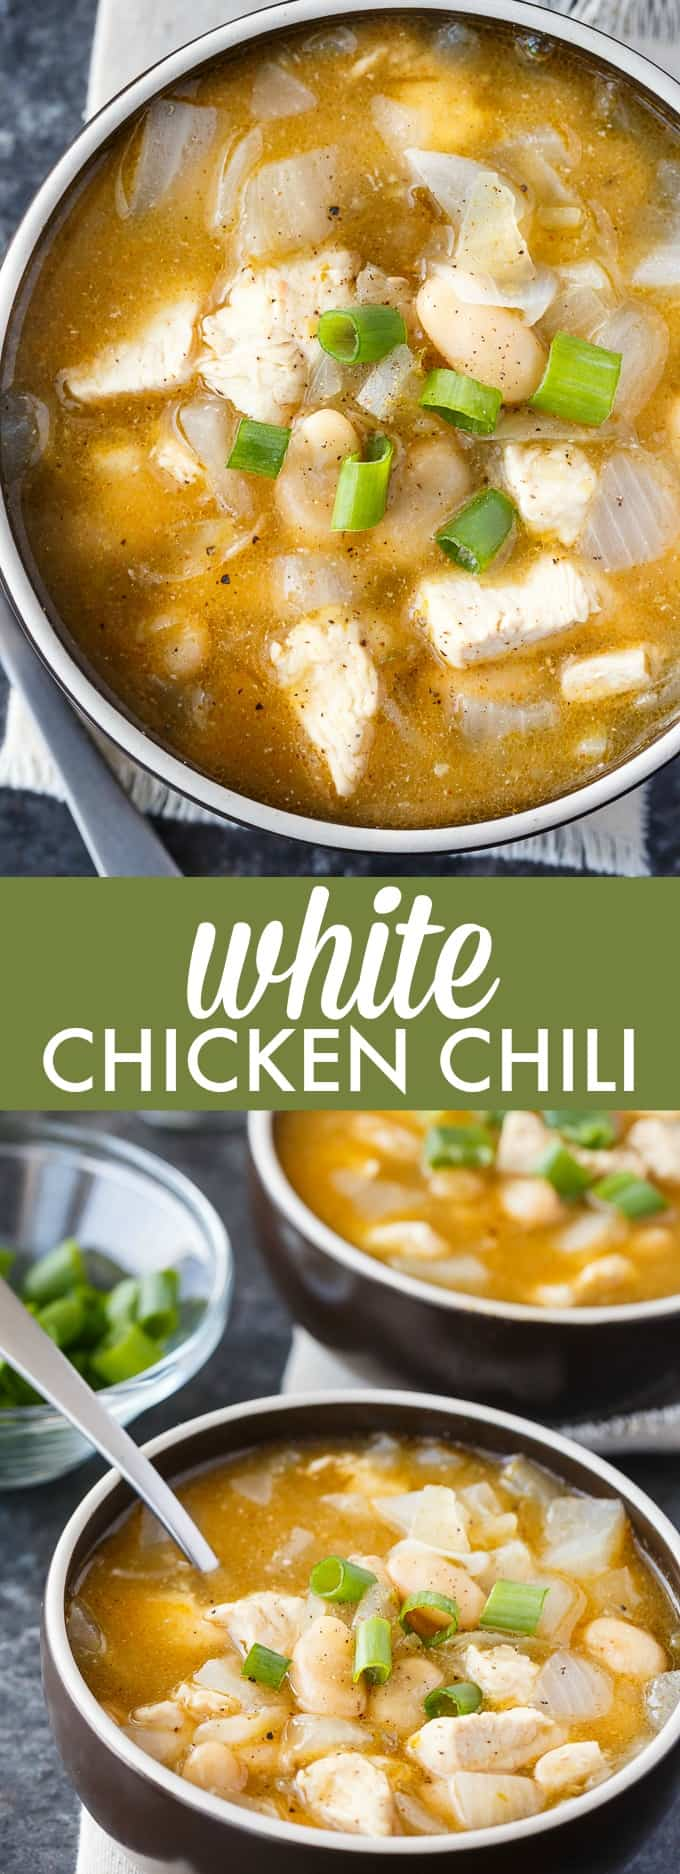 White Chicken Chili - Healthy and delicious! This simple white chili recipe is filled with tender morsels of chicken, white kidney beans and spices.